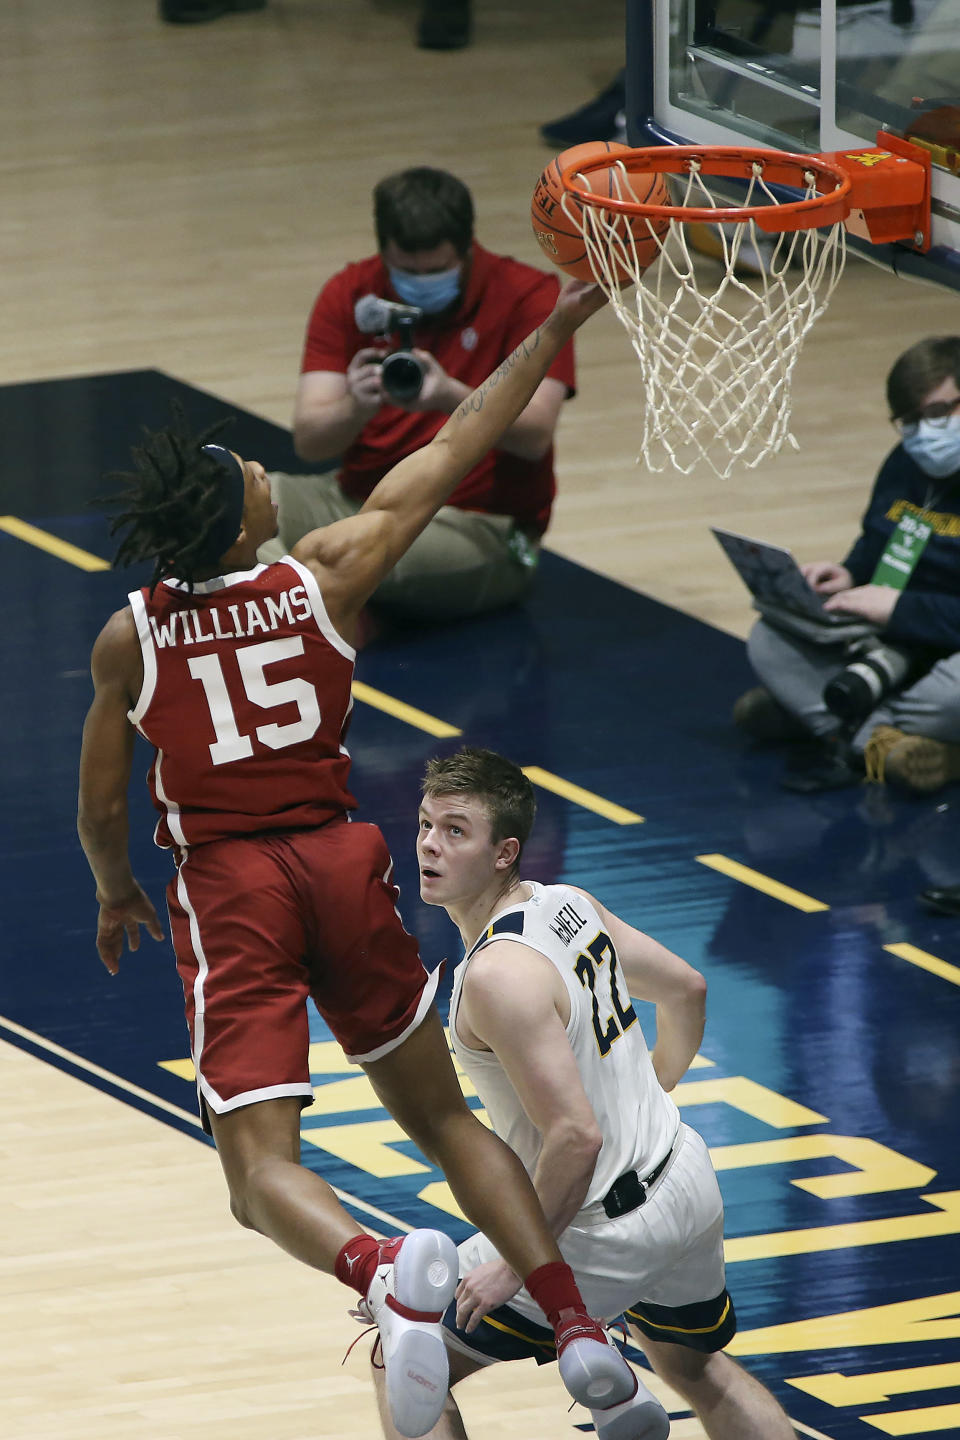 Oklahoma guard Alondes Williams (15) shoots over West Virginia guard Sean McNeil (22) during the first half of an NCAA college basketball game Saturday, Feb. 13, 2021, in Morgantown, W.Va. (AP Photo/Kathleen Batten)